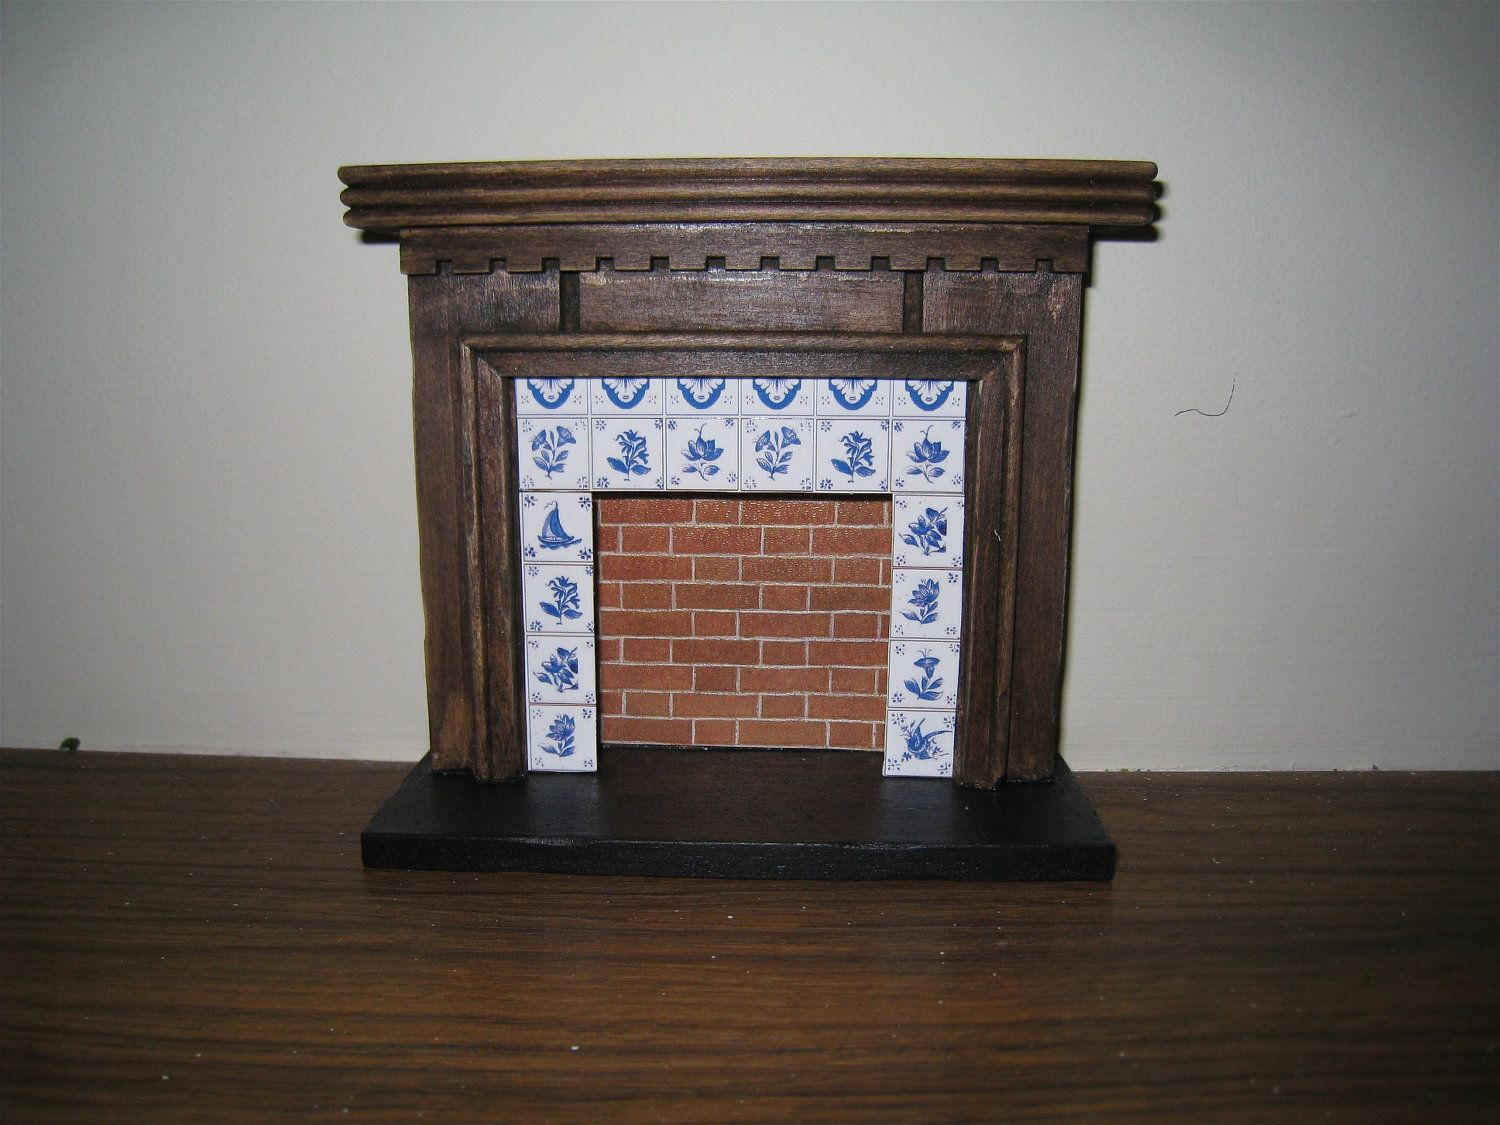 Fireplace, country style with tiled surround,dark oak, twelfth scale miniature - want!